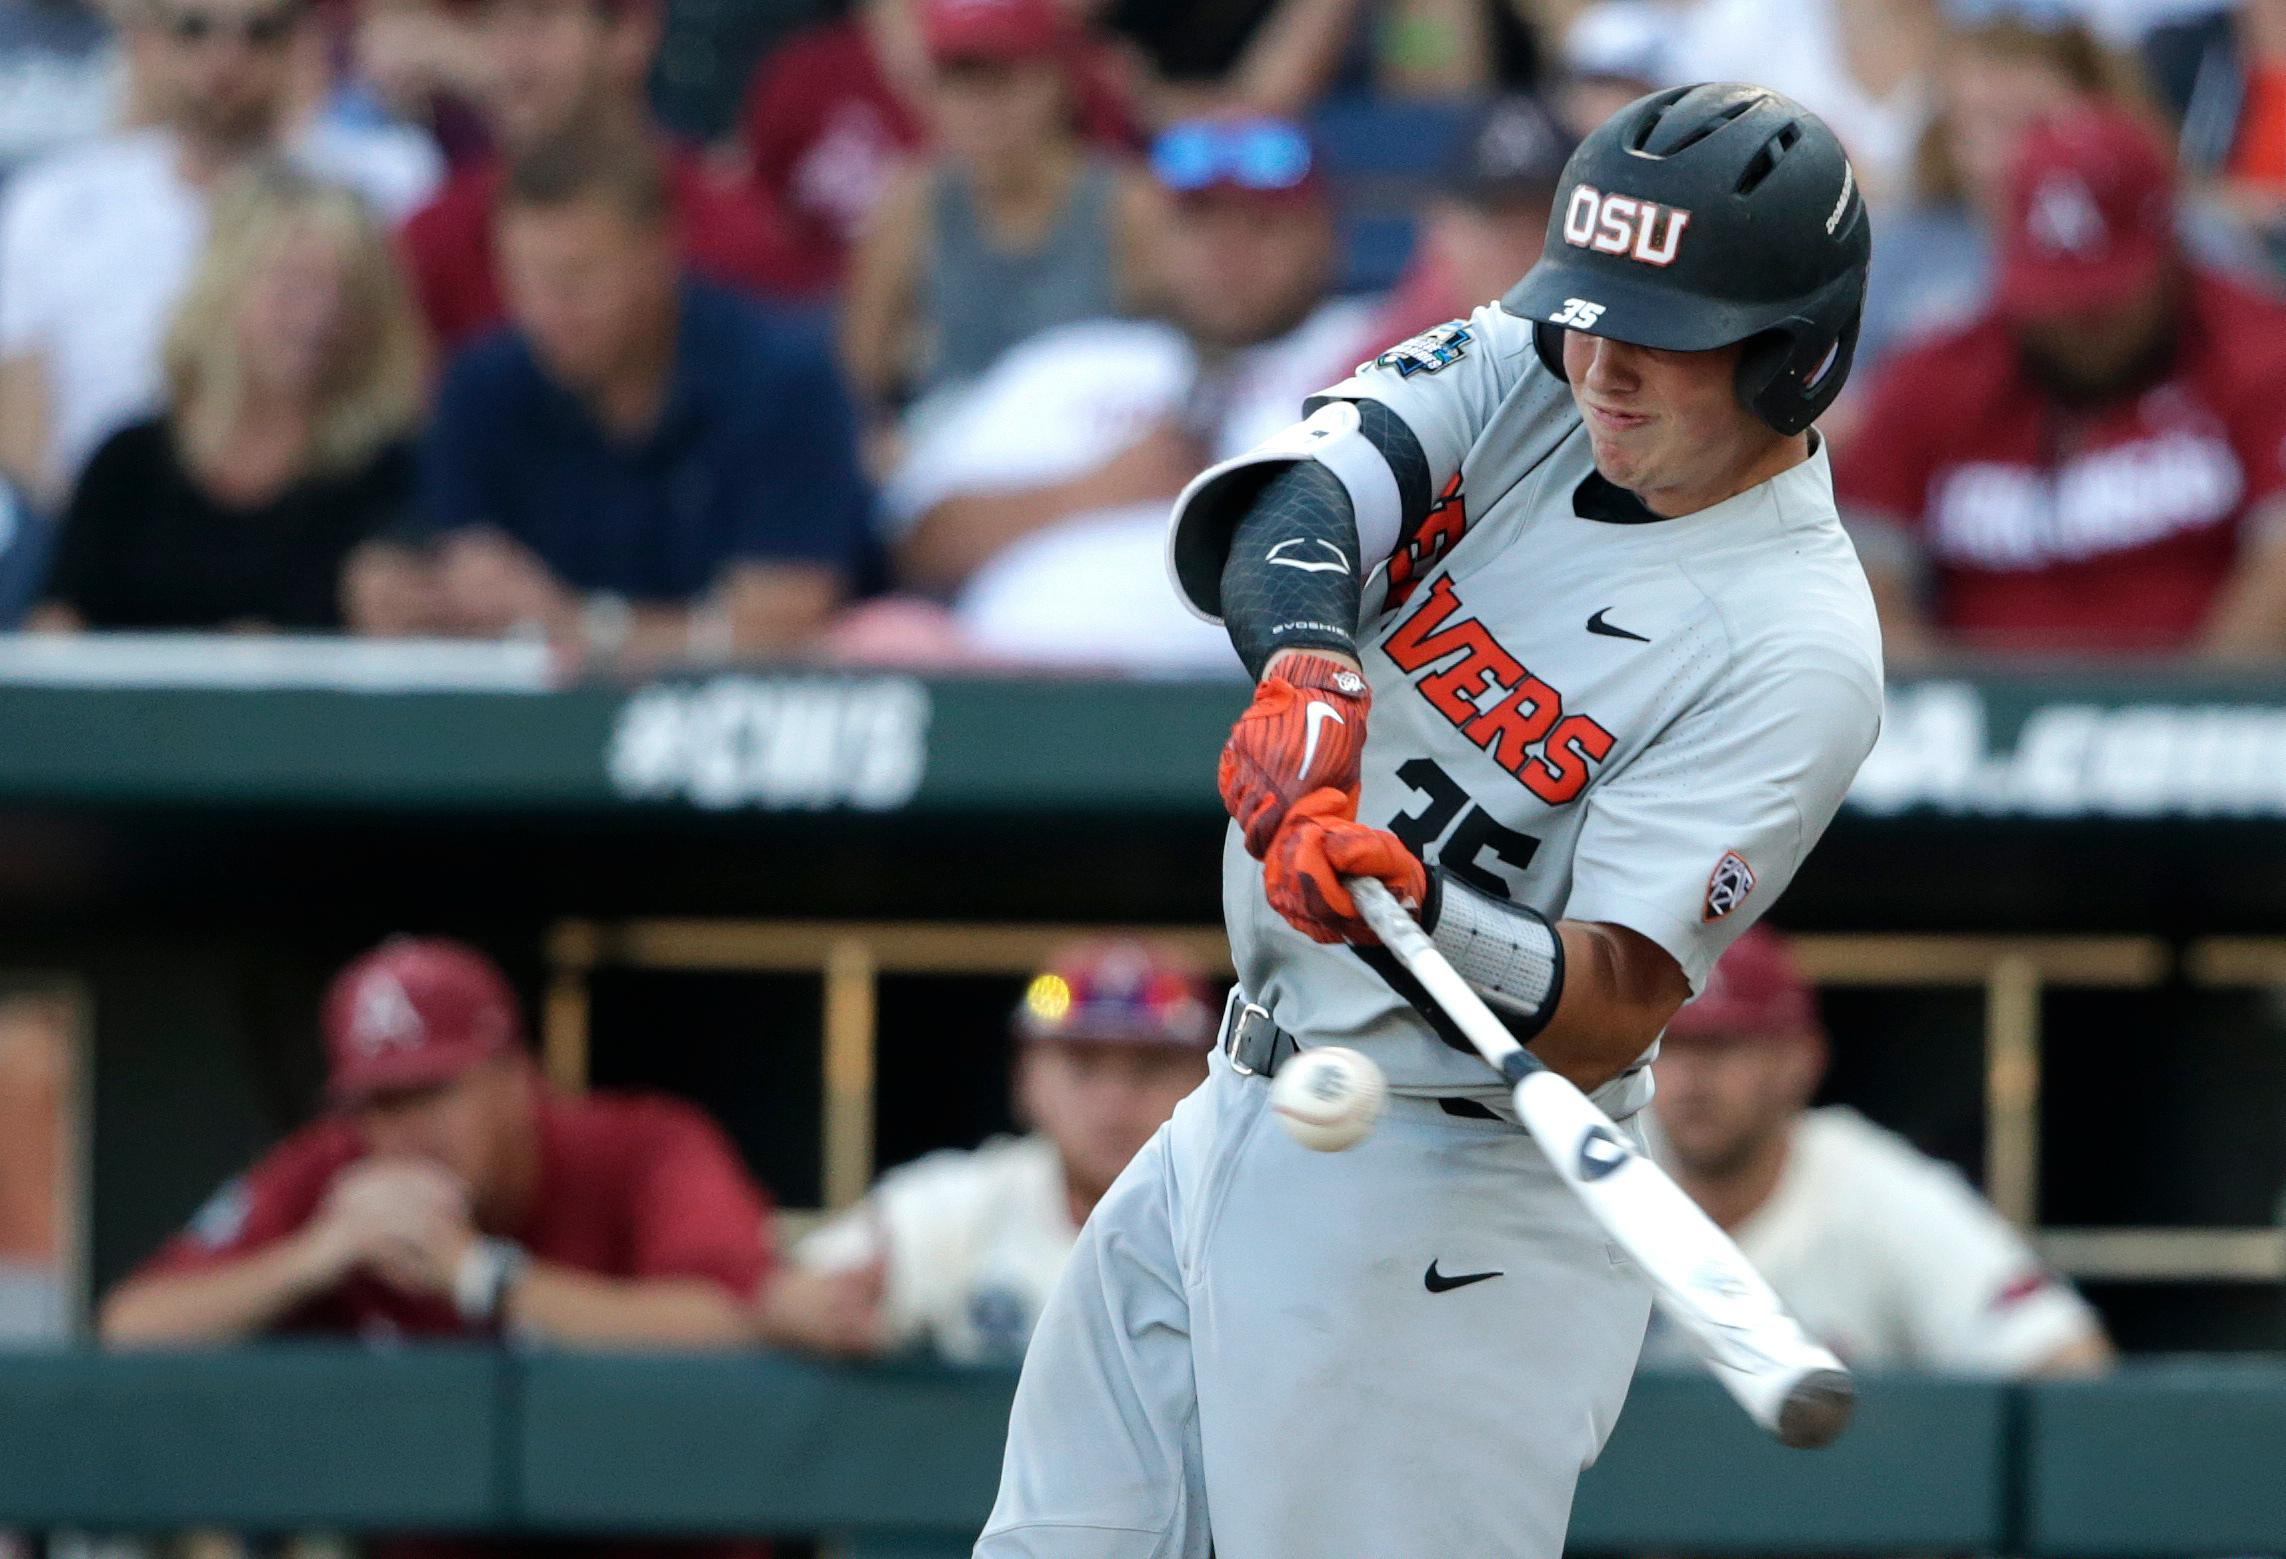 Oregon State's Adley Rutschman singles against Arkansas during the fifth inning of Game 3 of the NCAA College World Series baseball finals, Thursday, June 28, 2018, in Omaha, Neb. (AP Photo/Nati Harnik)